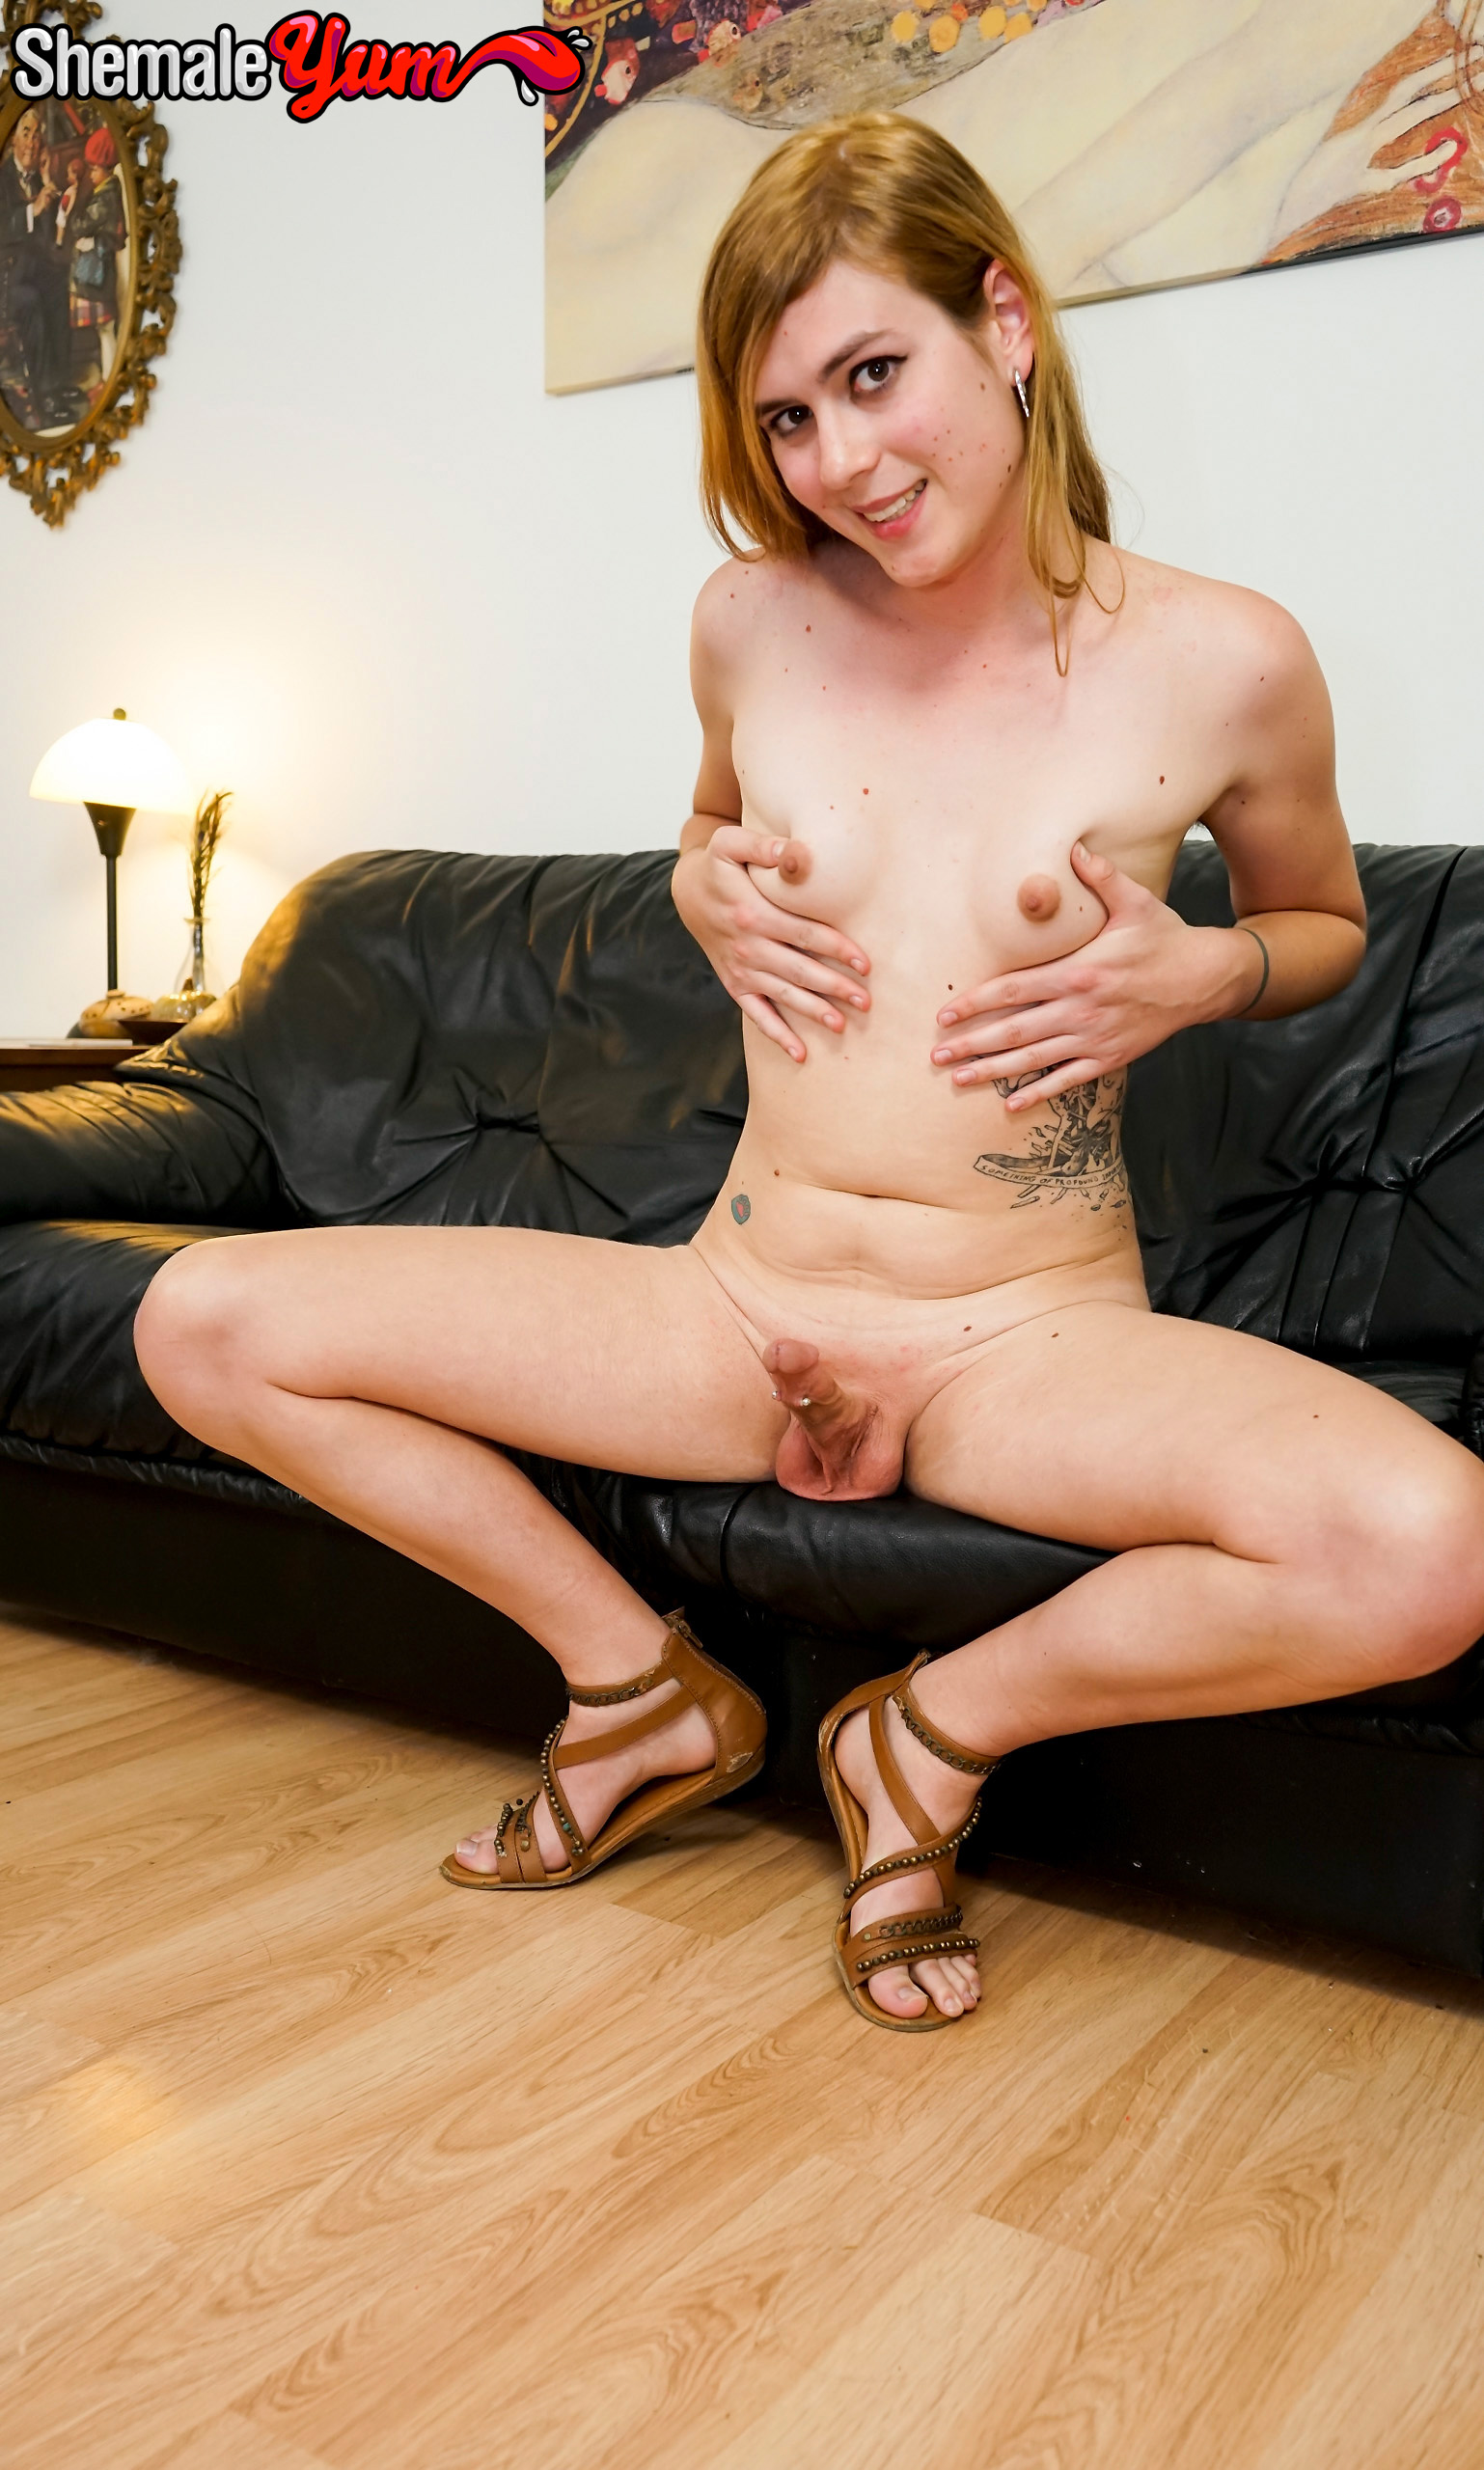 Another cock fucking her cunt lets meet for real - 2 part 10